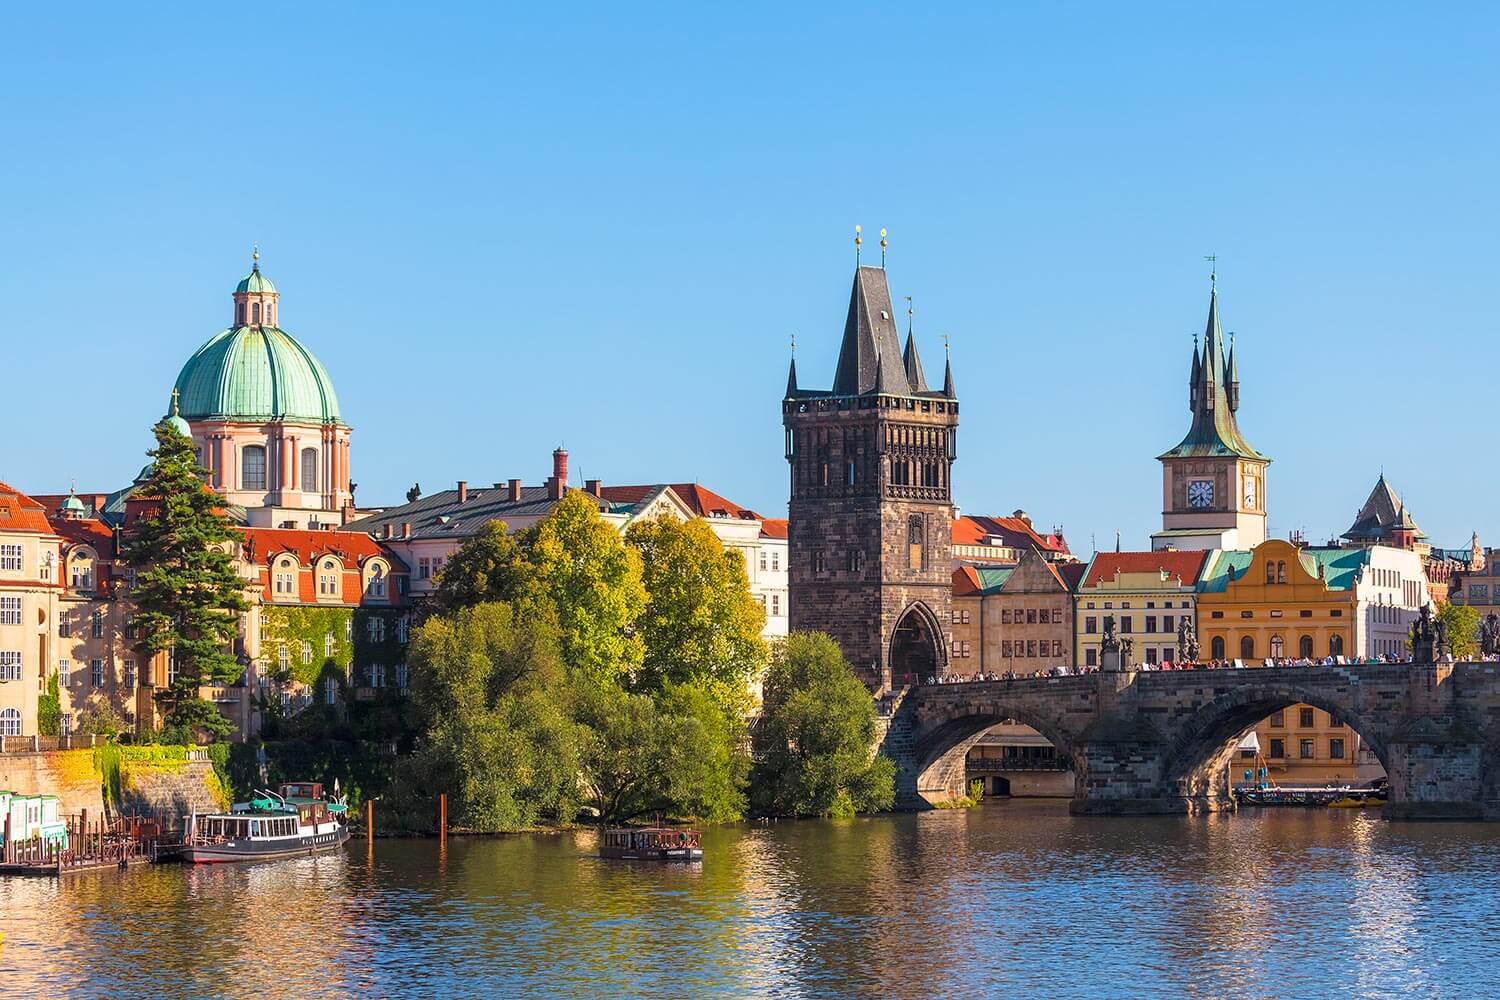 Prague Skyline with the Old Town Bridge Tower and the Vltava